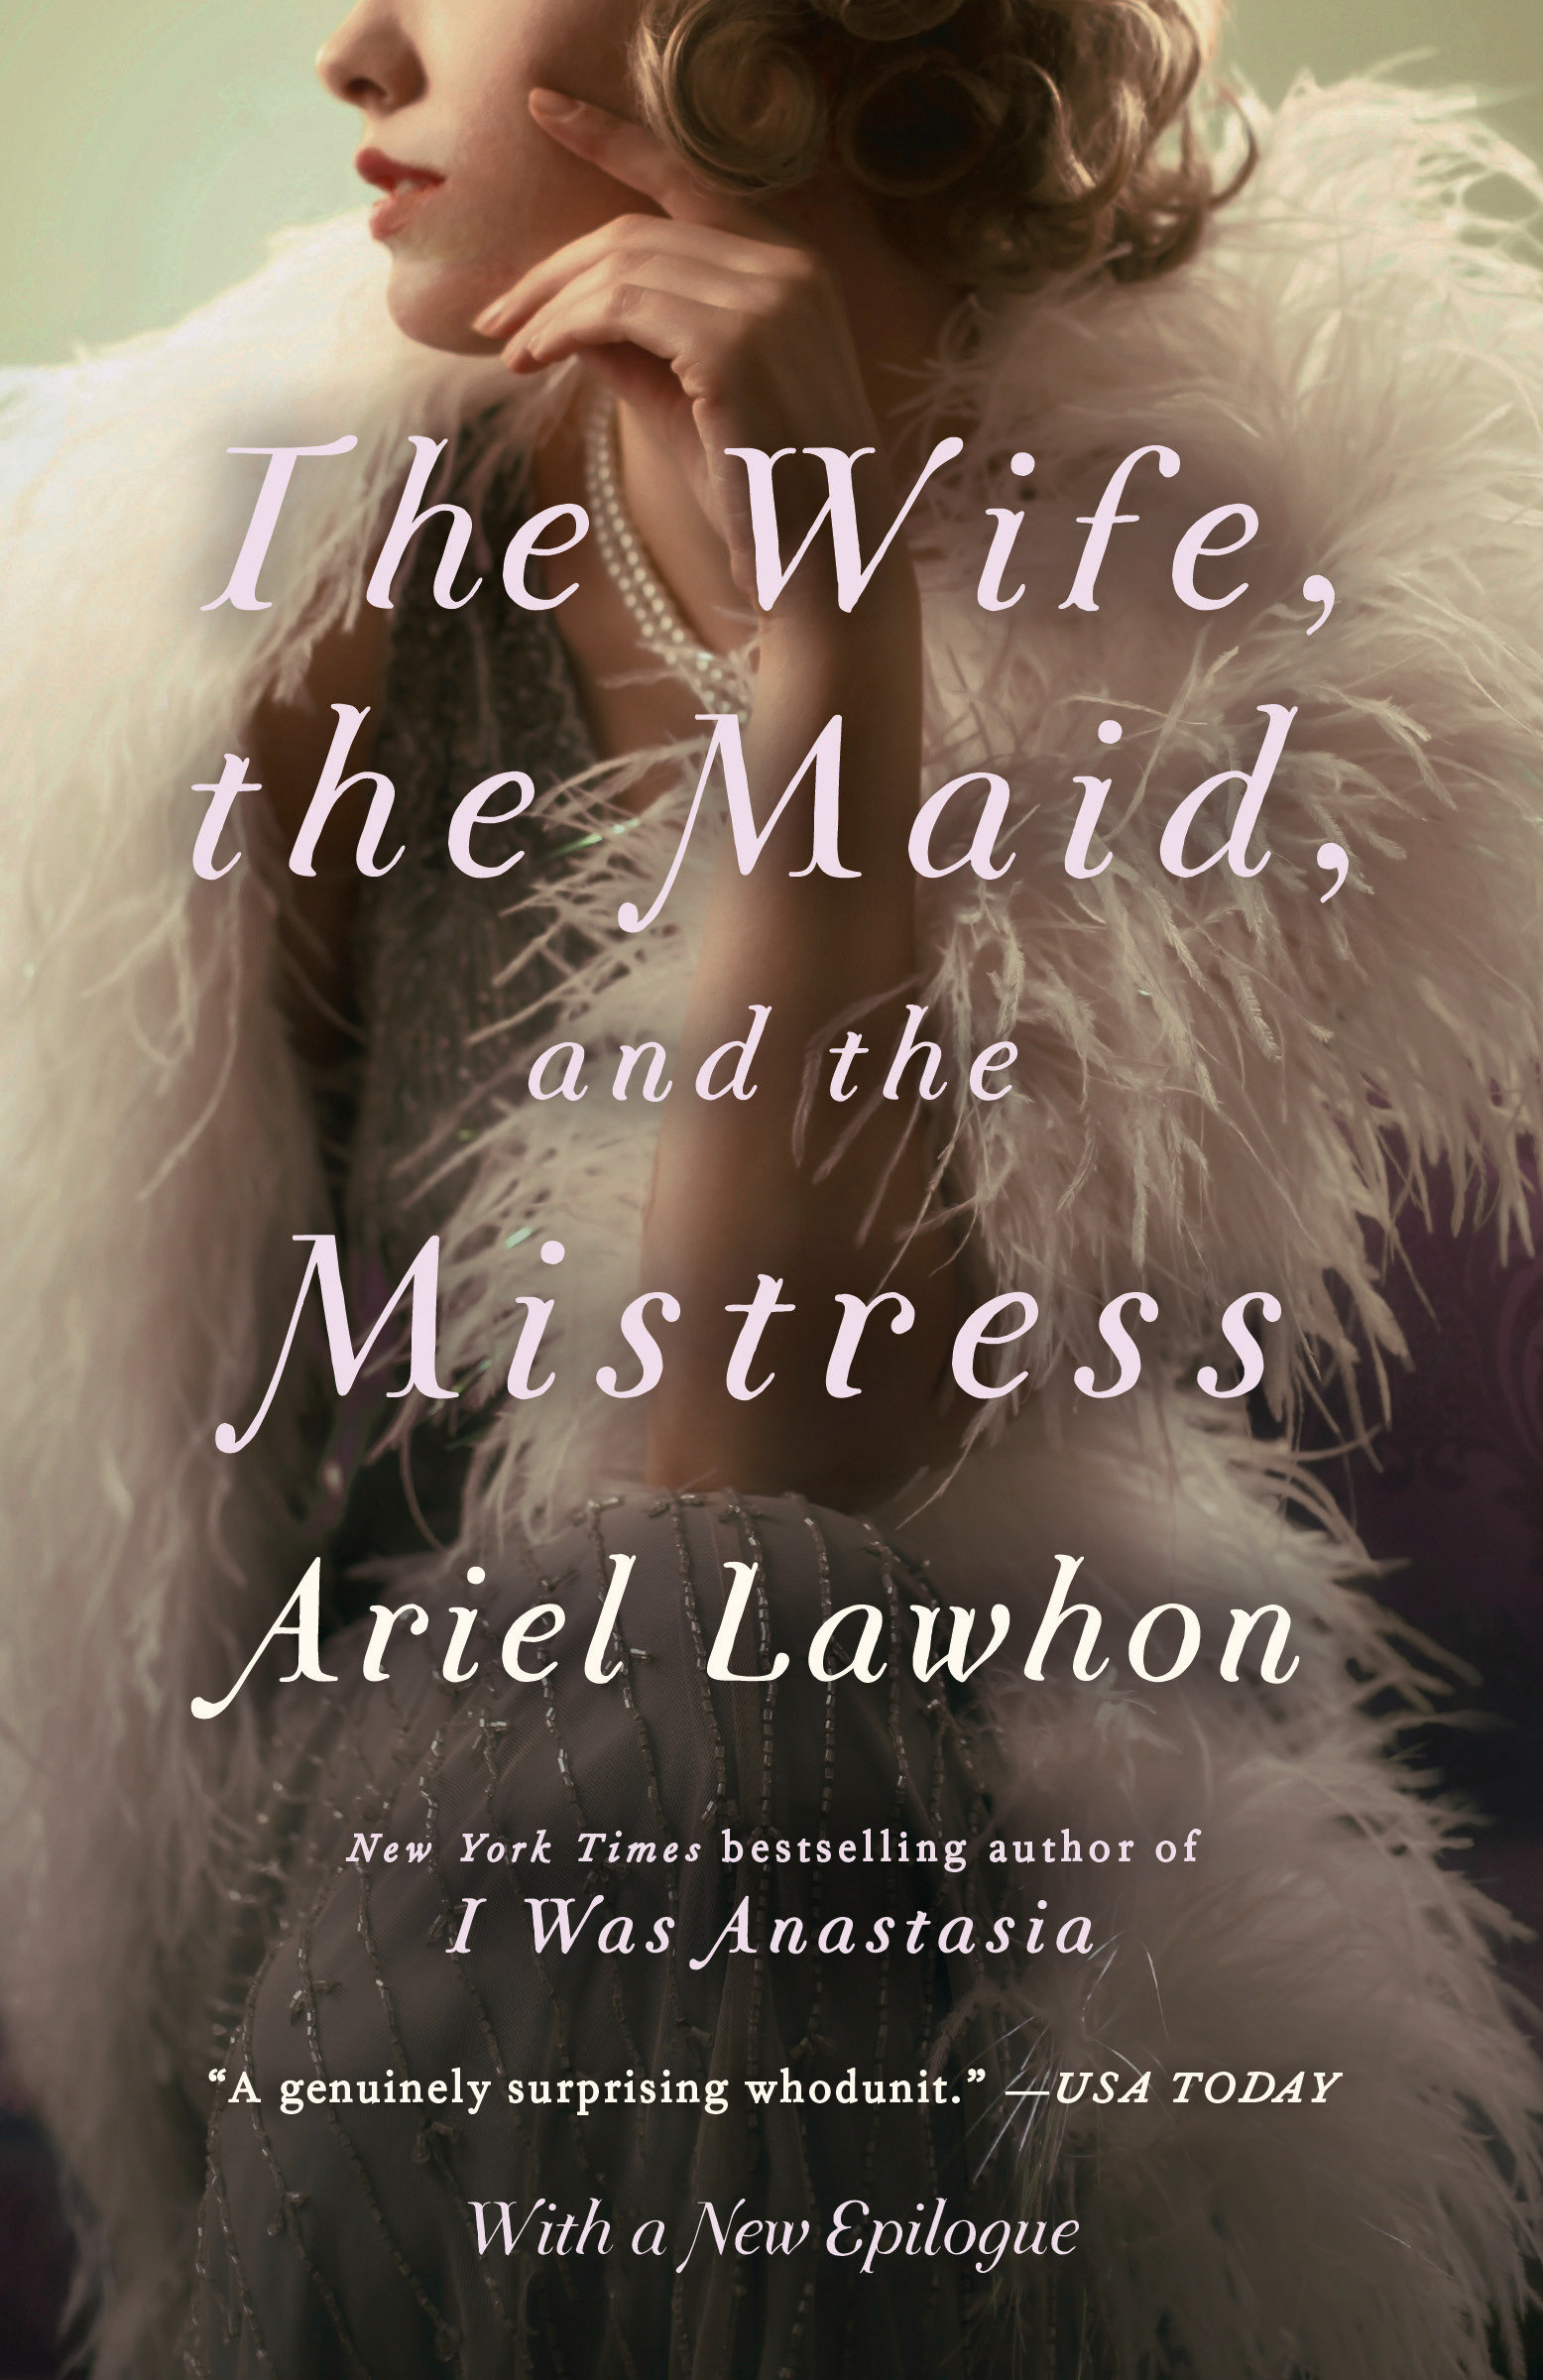 The Wife, the Maid, and the Mistress A Novel